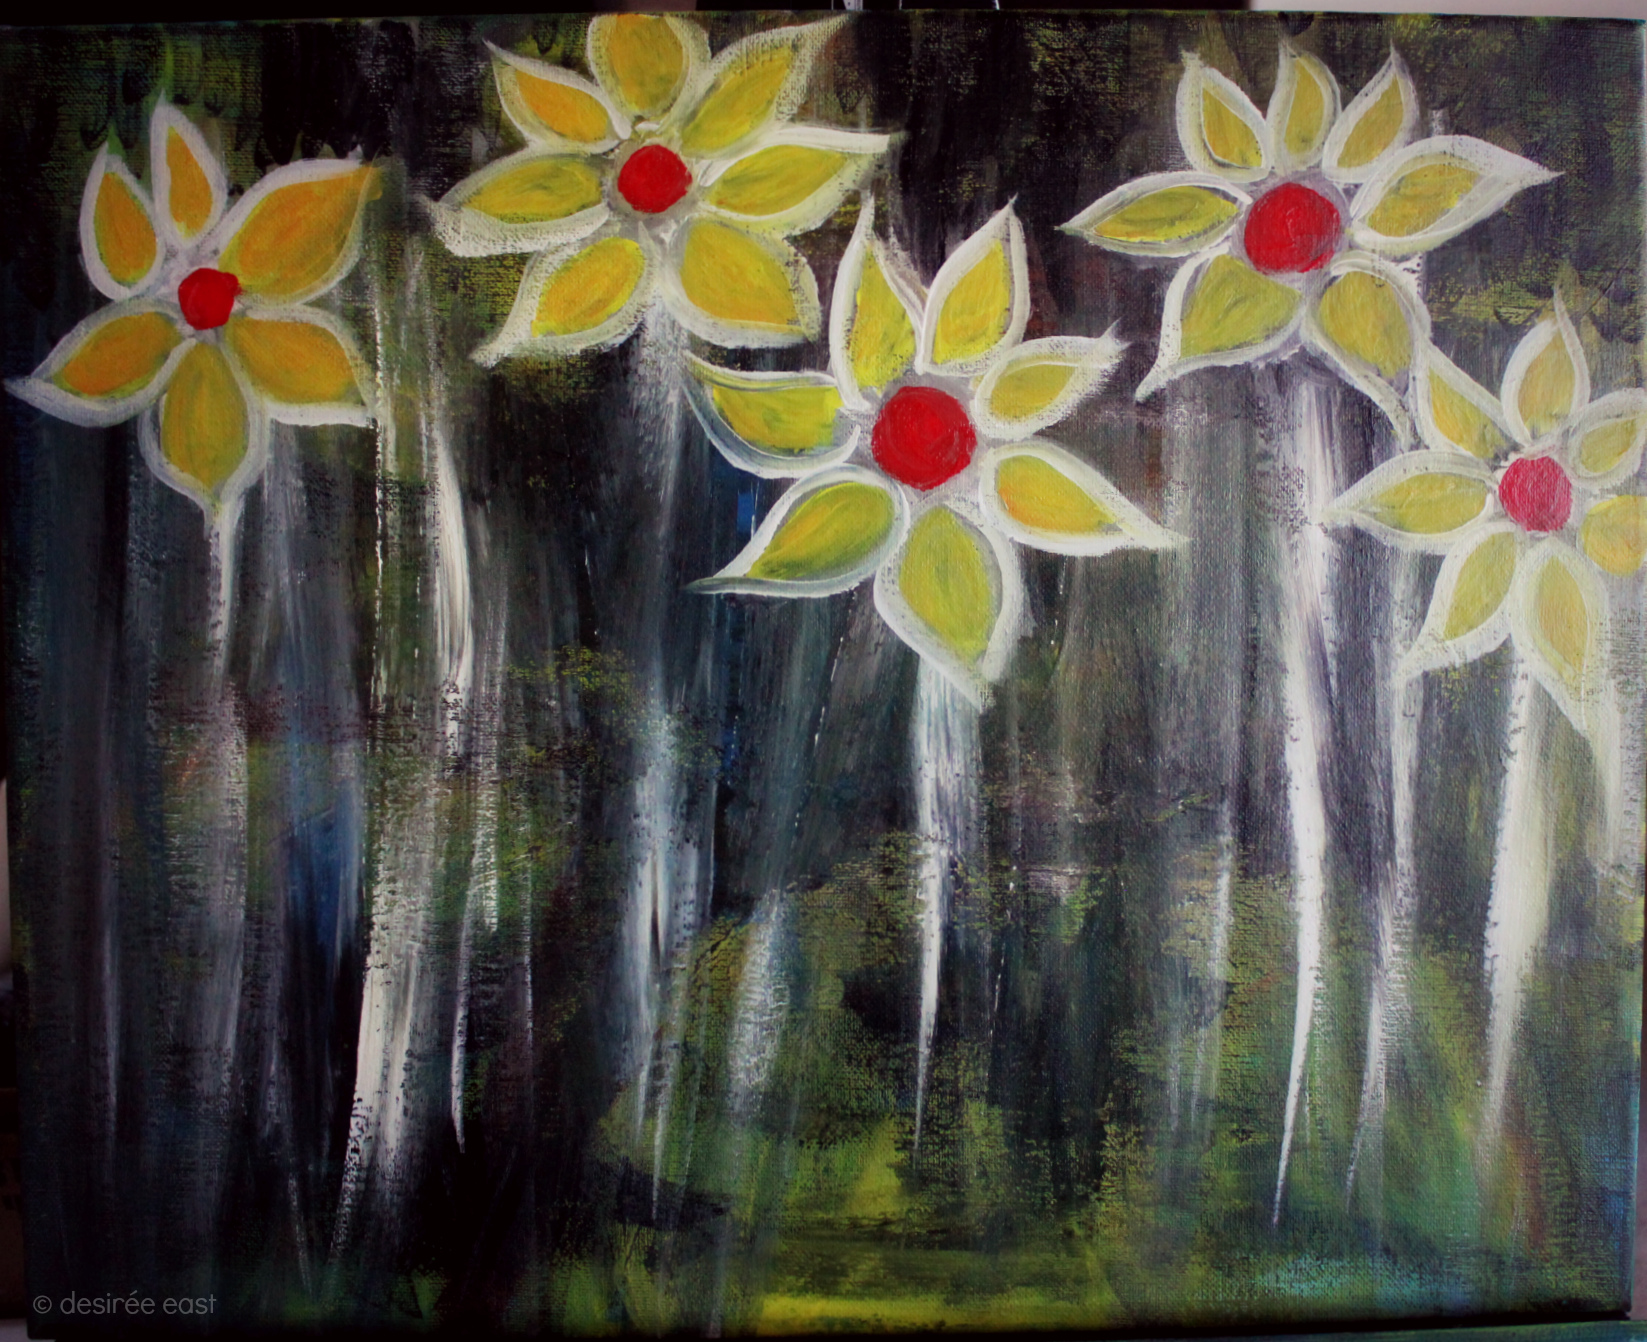 Creatively Fit Coaching. Painting Marathon Mile #17 - CONTRAST, sunflowers to brighten up a dark canvas by Desiree East